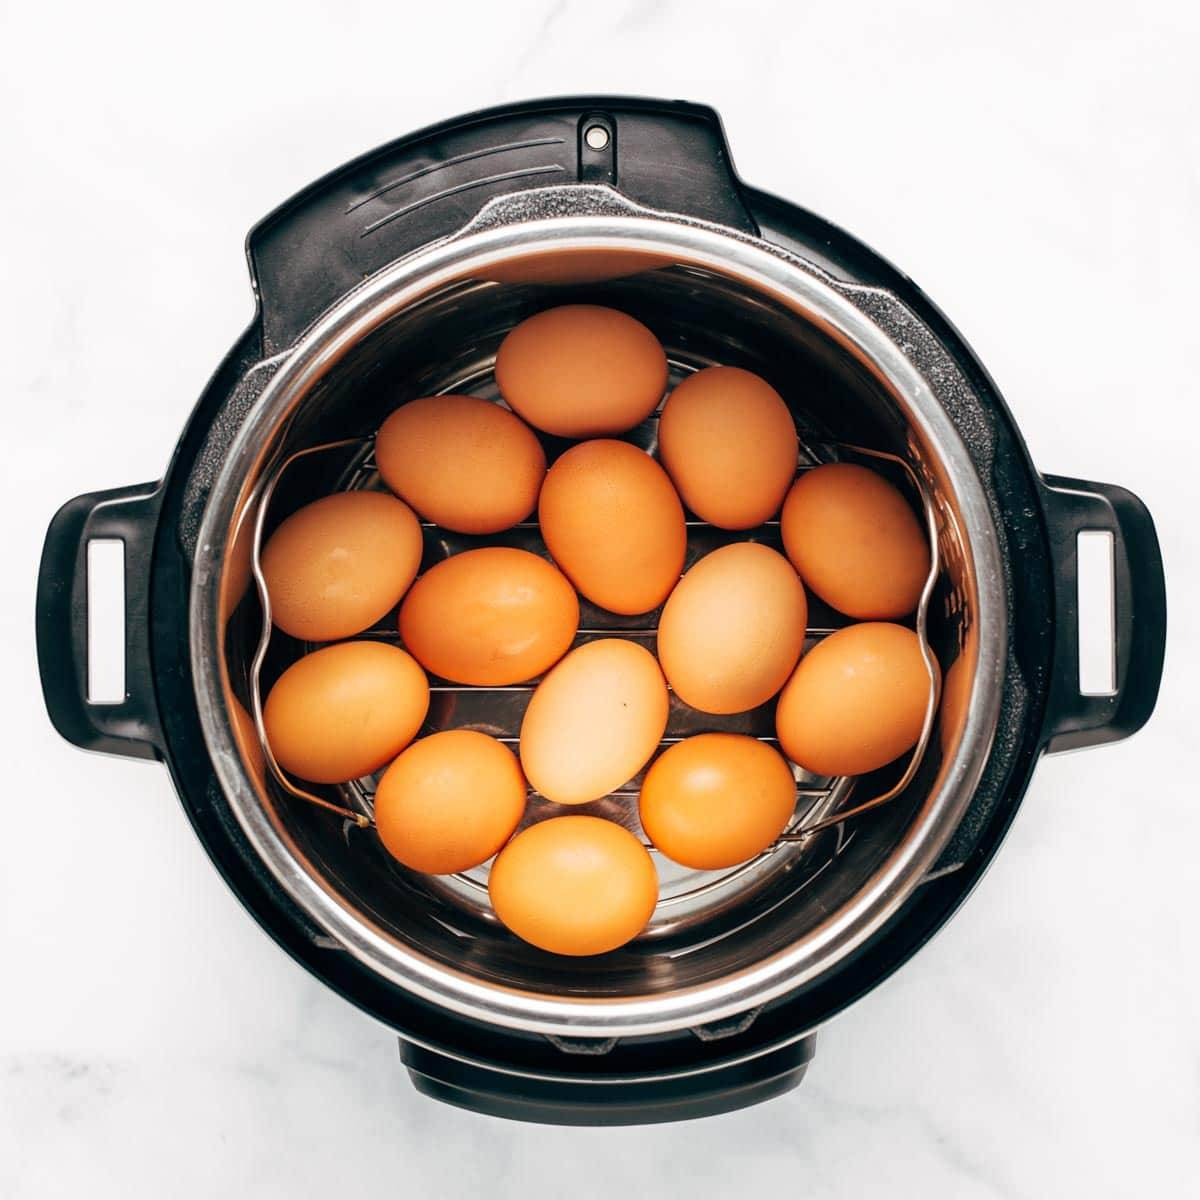 Eggs in the Instant Pot.